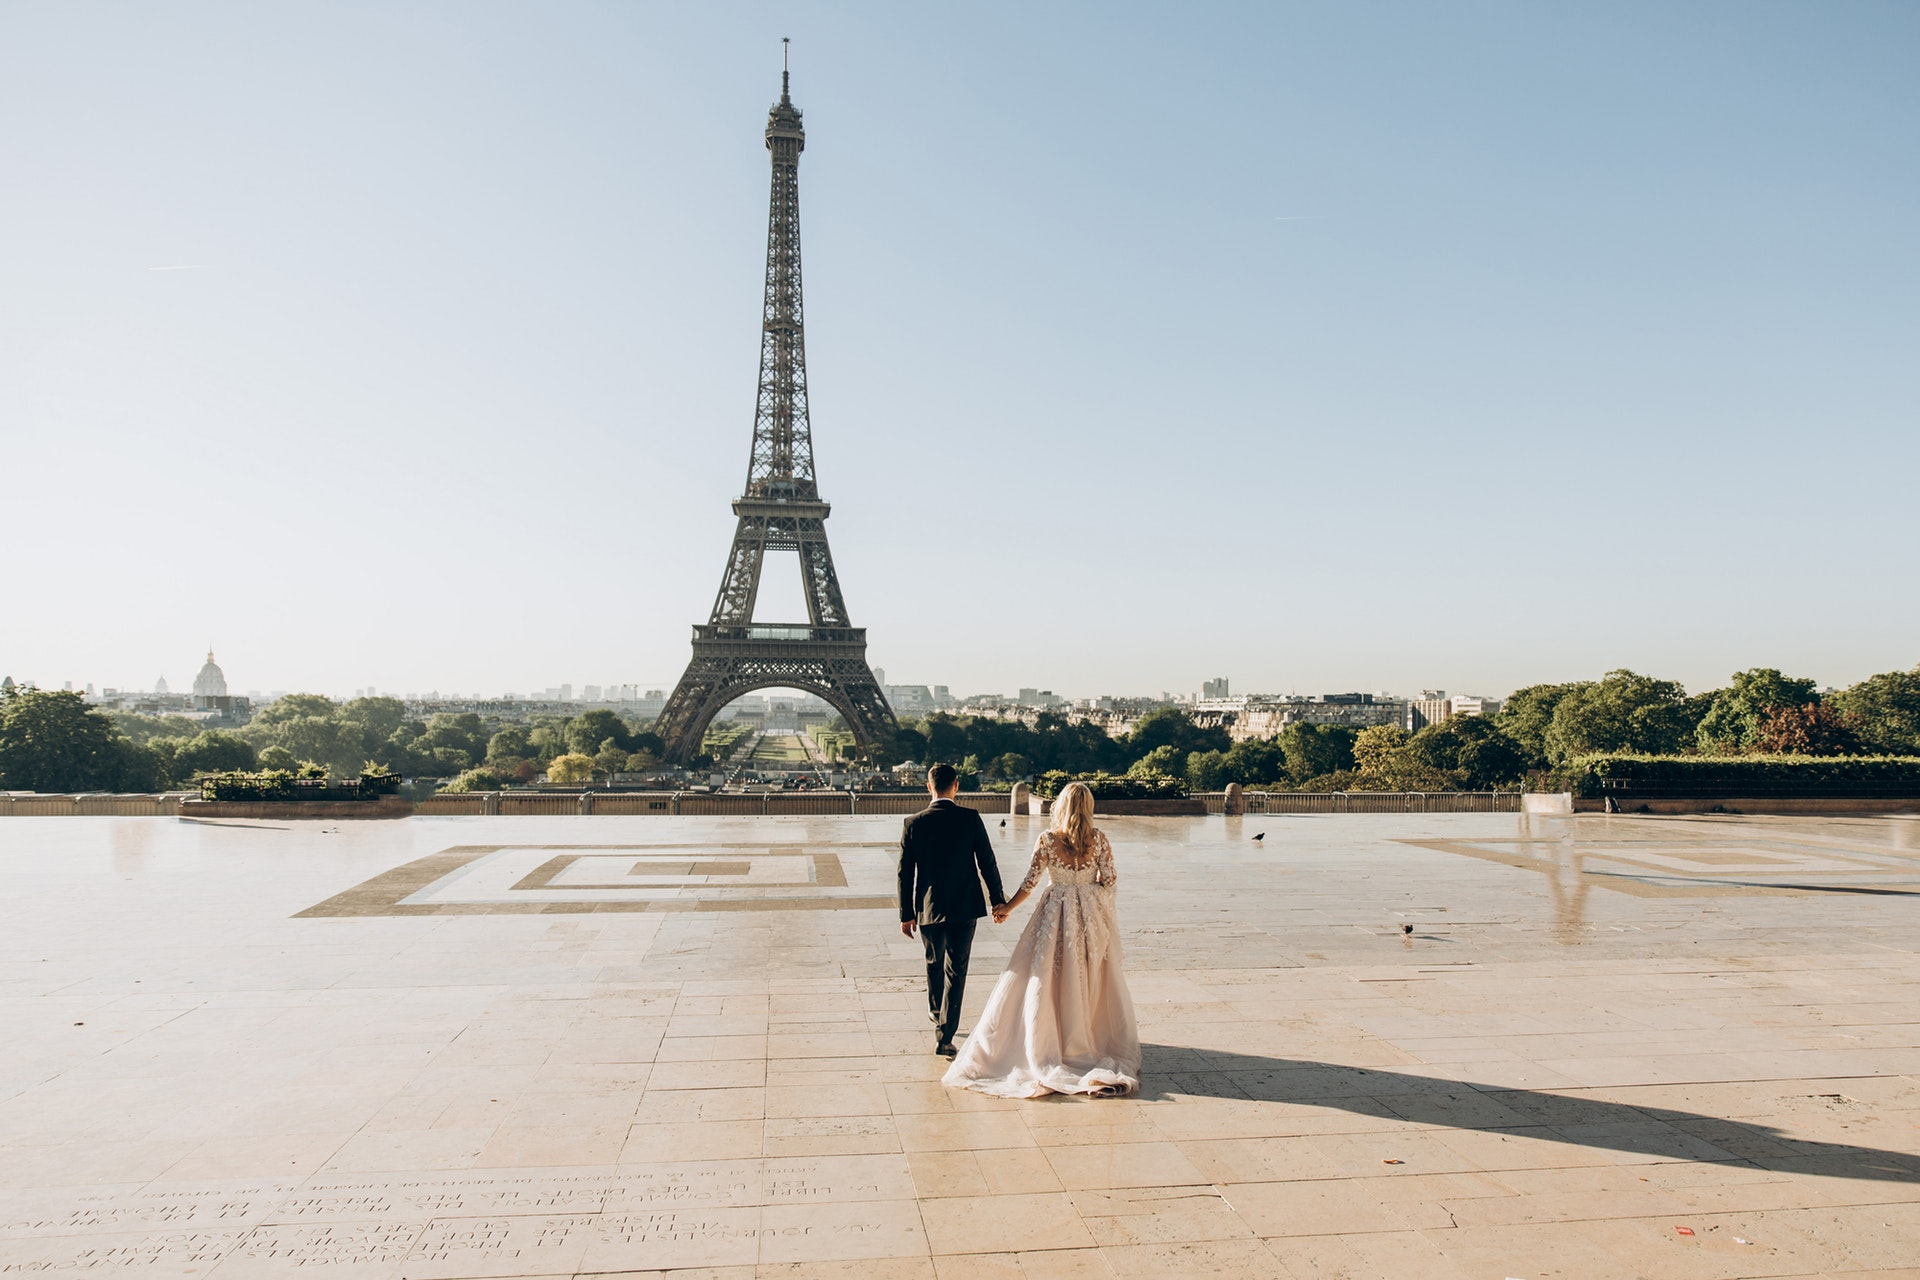 woman-and-man-walking-in-park-in-front-of-eiffel-tower-1488315